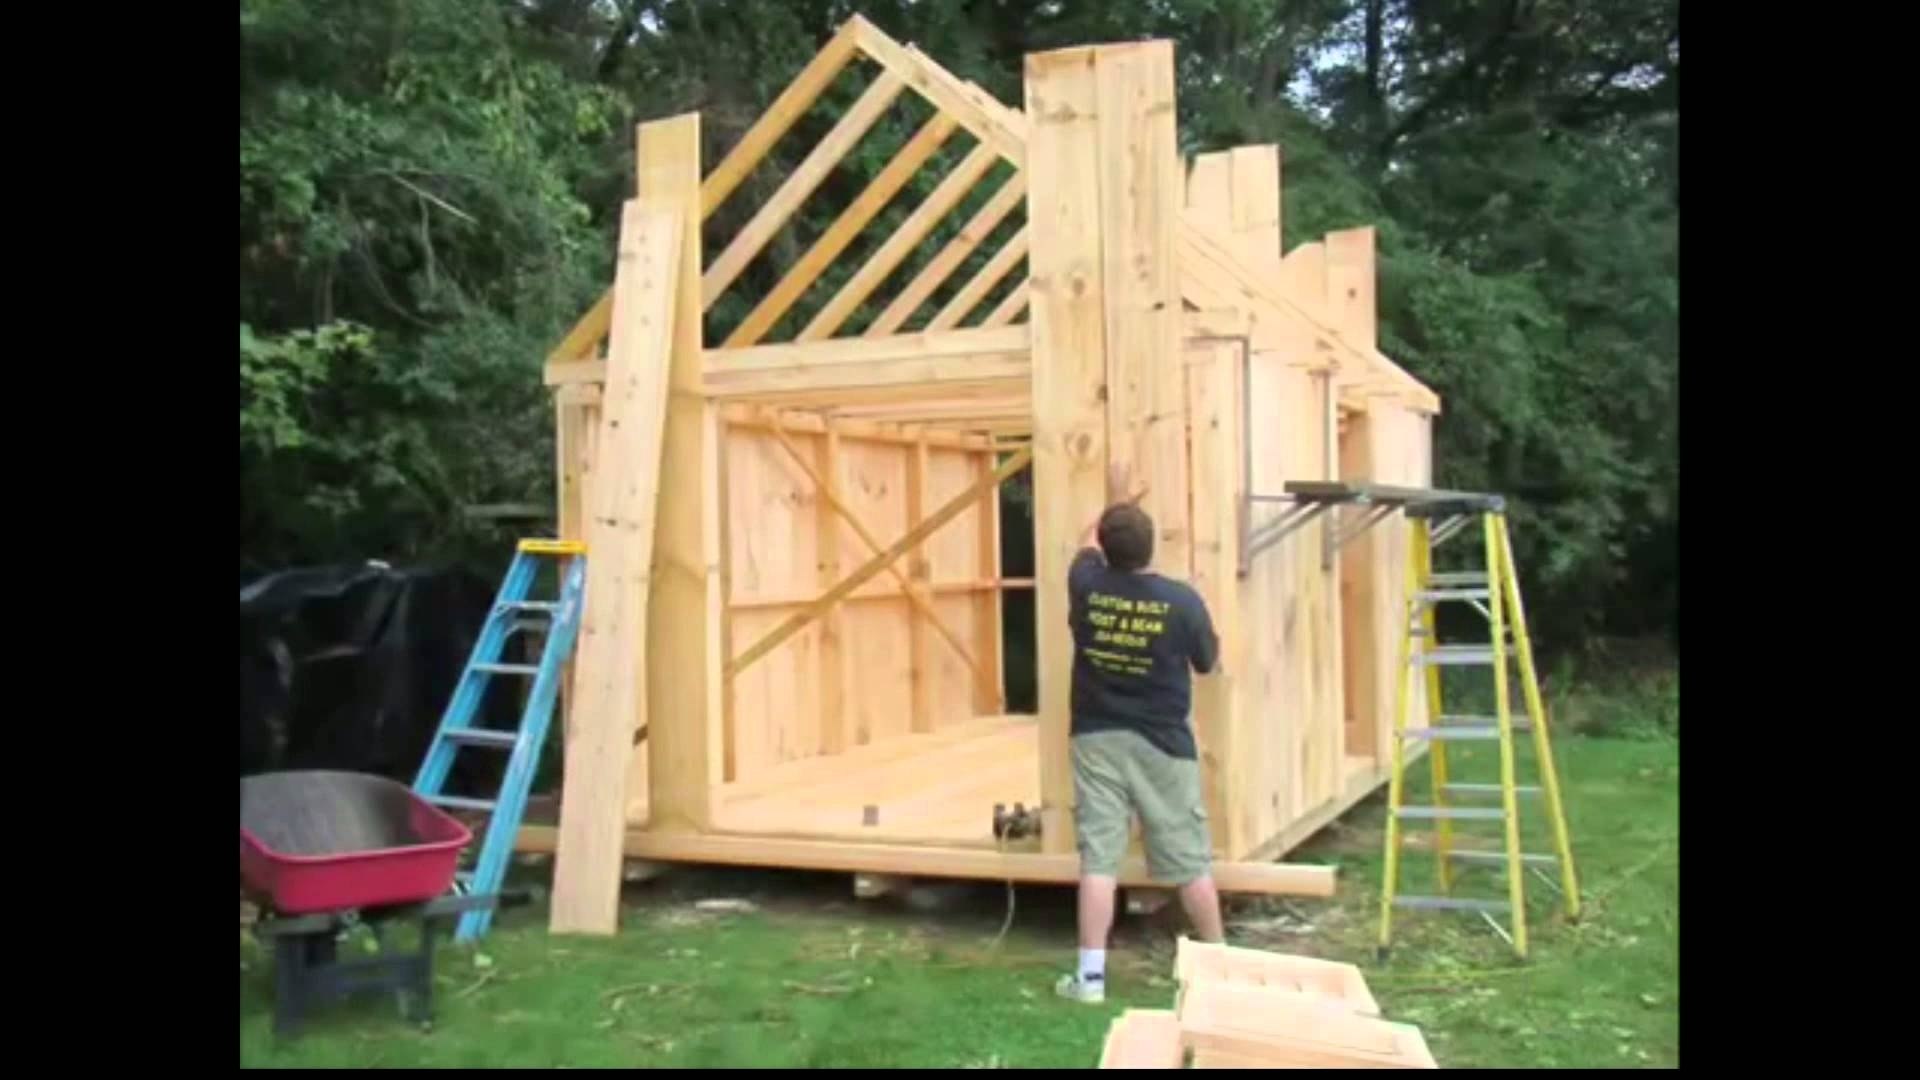 How To Build A Garden Shed • Building A Shed • How To Build A Shed intended for Backyard Garden Shed Plans